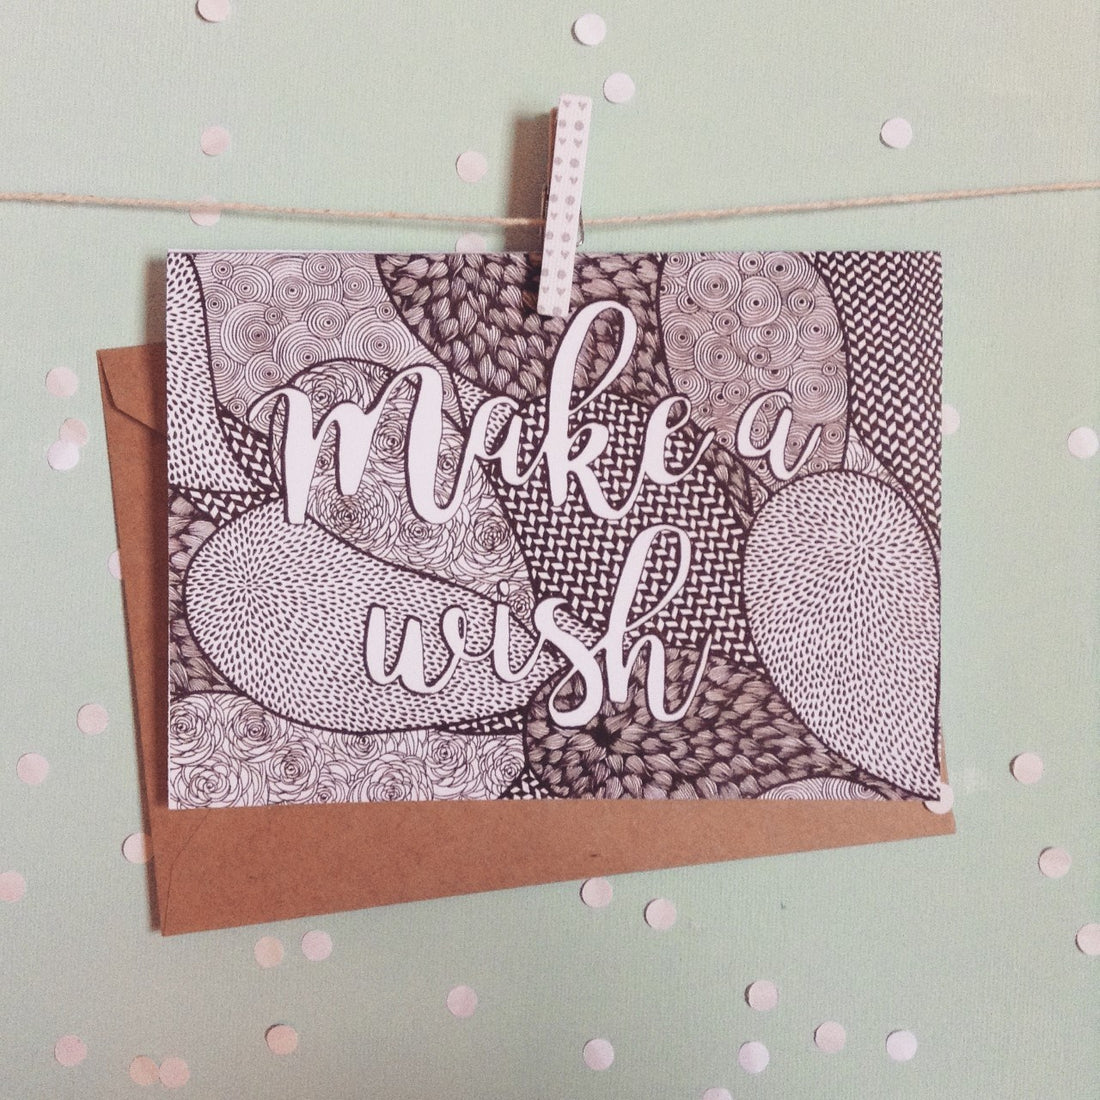 Make A Wish Greeting Card - The Makers